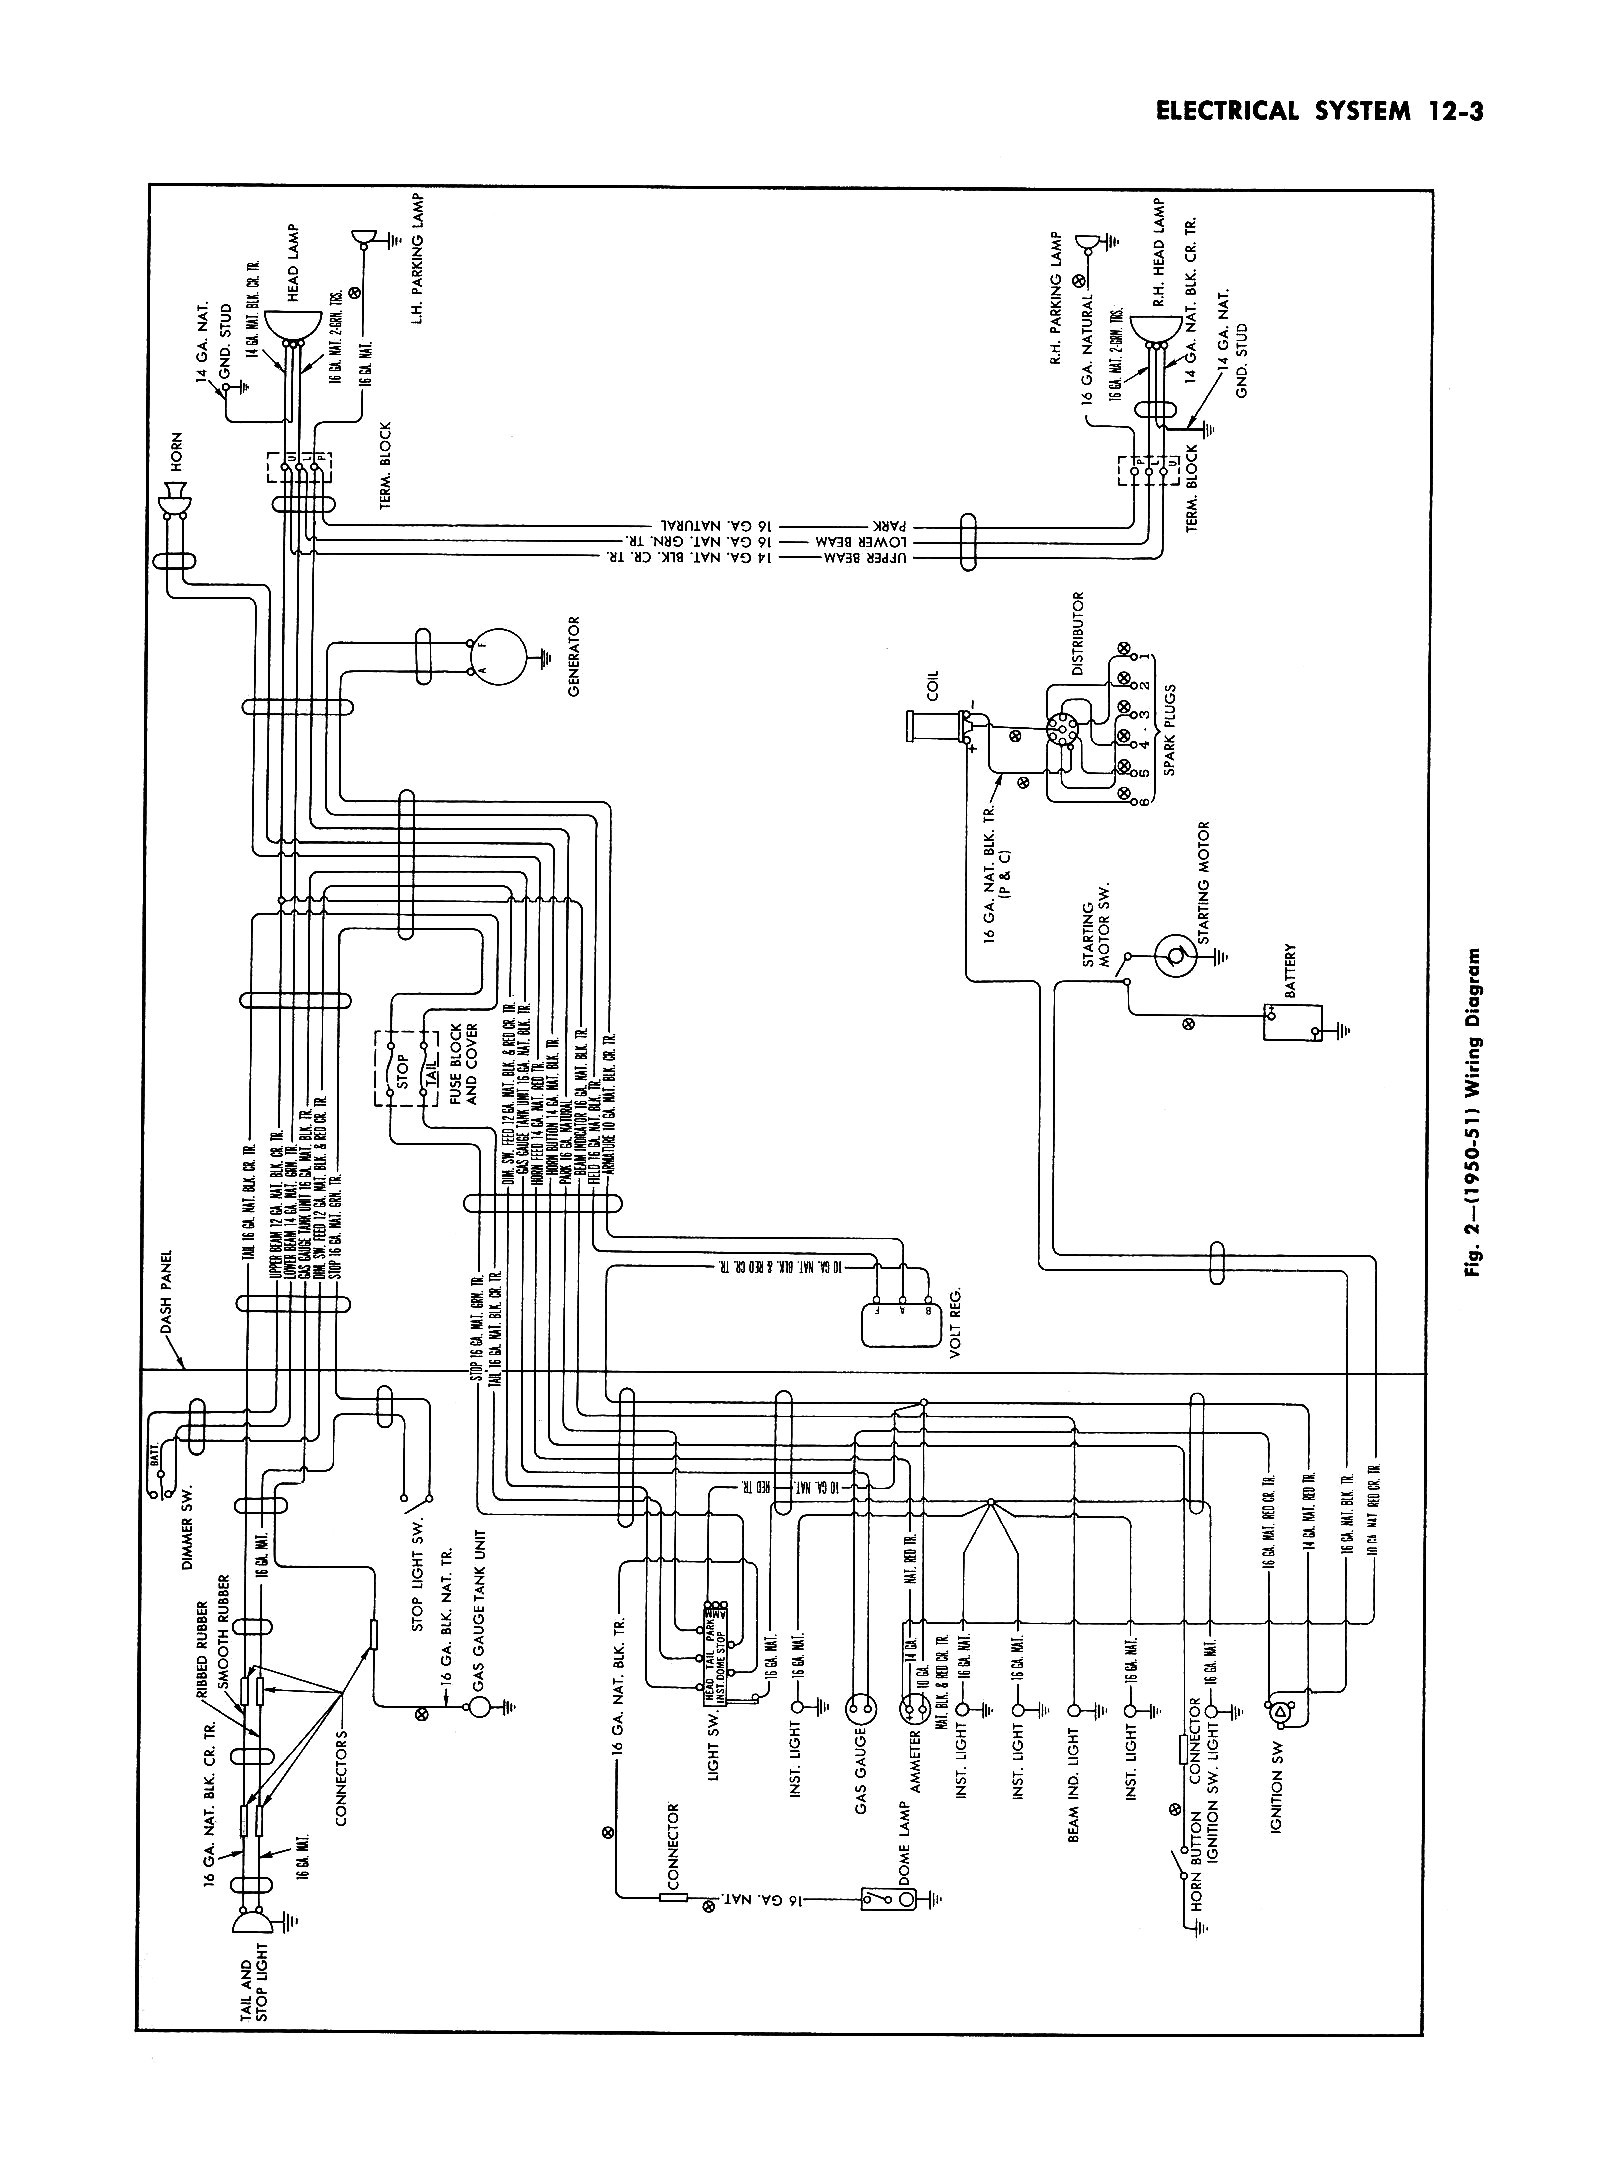 Gmc Truck Wiring Diagrams Wiring Diagram 1951 Chevy Truck Wiring Diagram Ezgo Controller Of Gmc Truck Wiring Diagrams